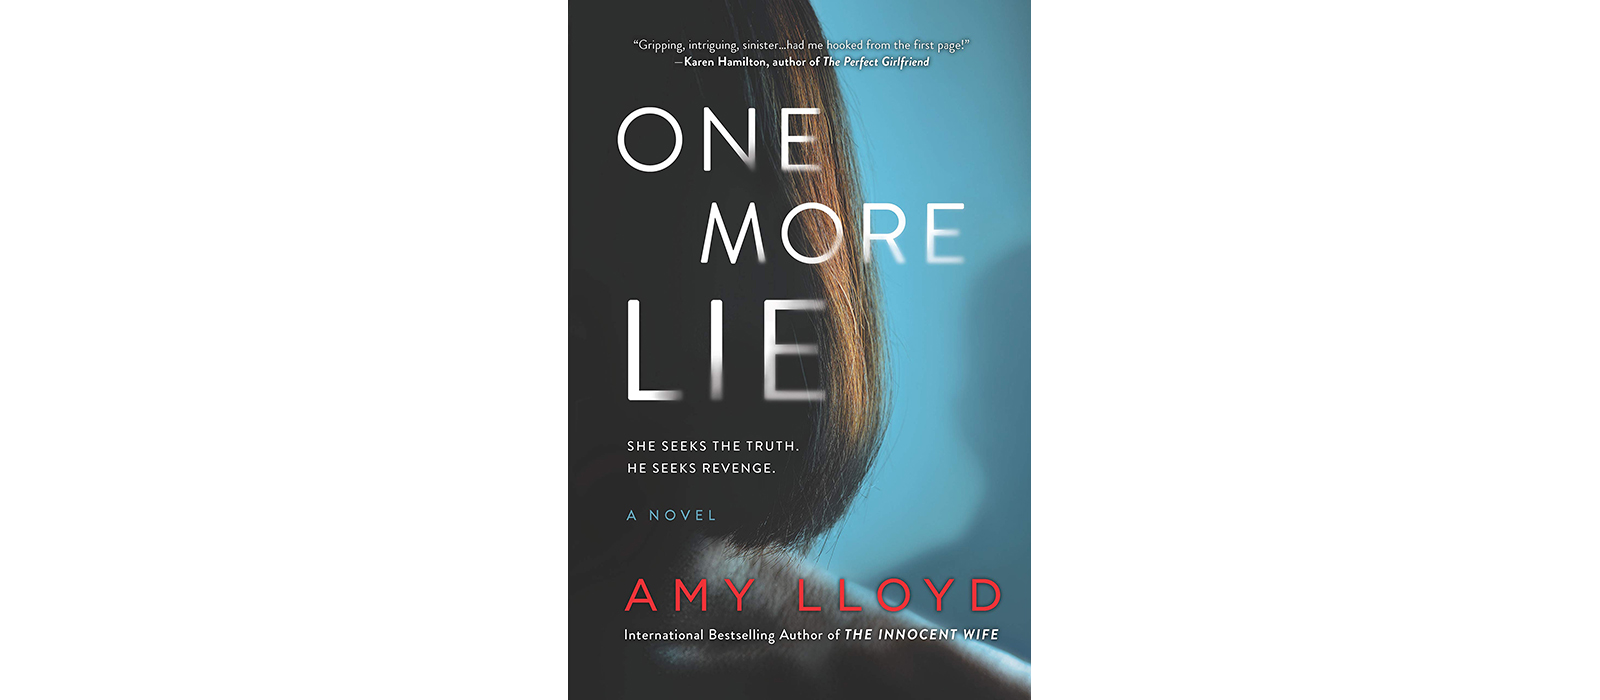 Cover of One More Lie, by Amy Lloyd